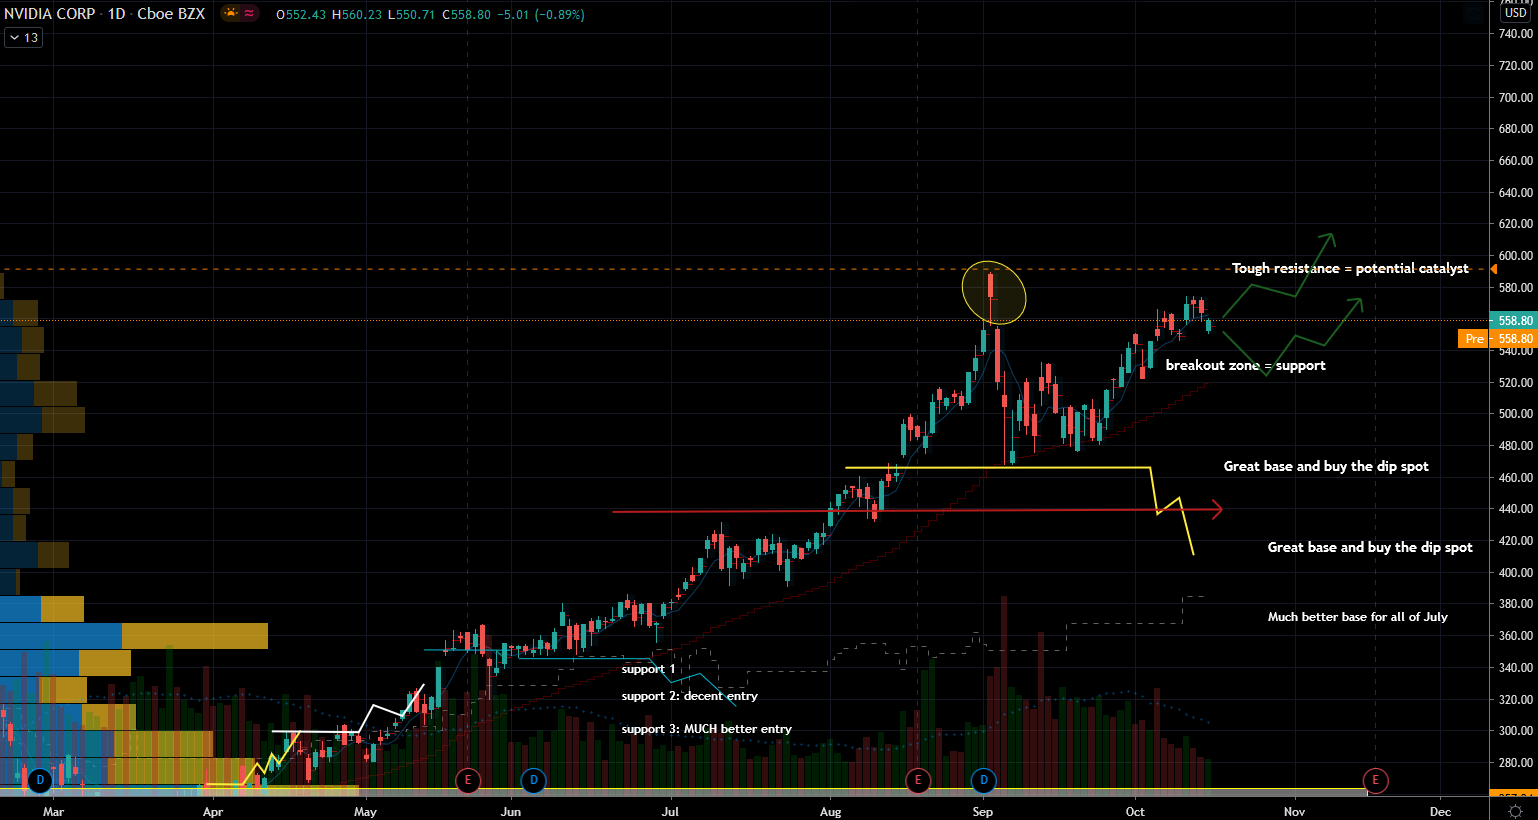 Nvidia (NVDA) Stock Chart Showing Support Zones versus Upside Potential